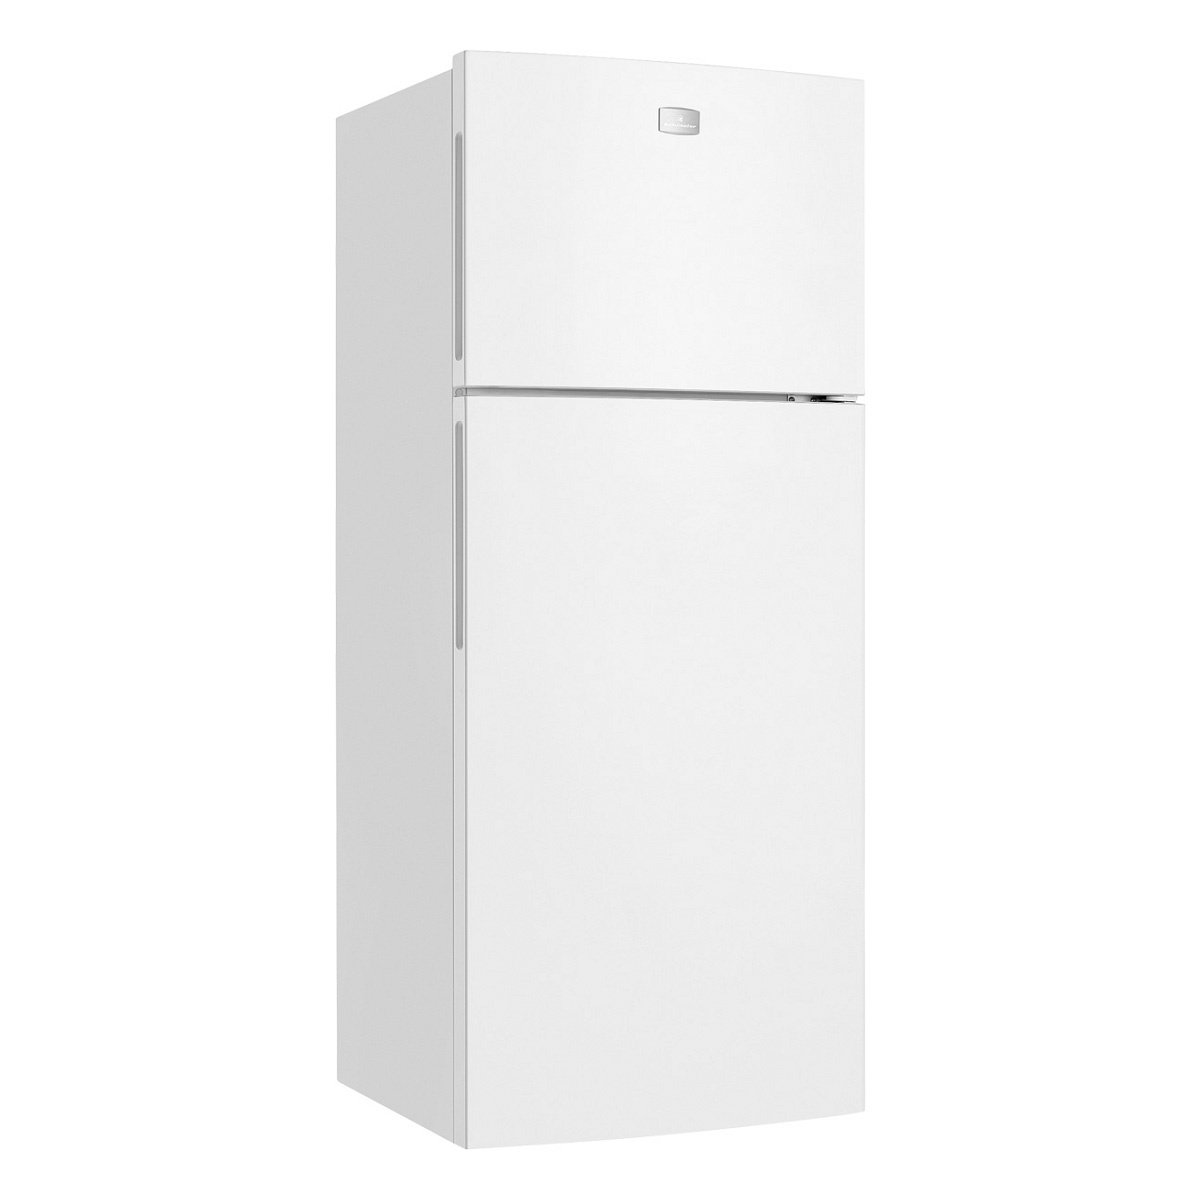 Kelvinator KTM4602WARH 460L Top Mount Fridge